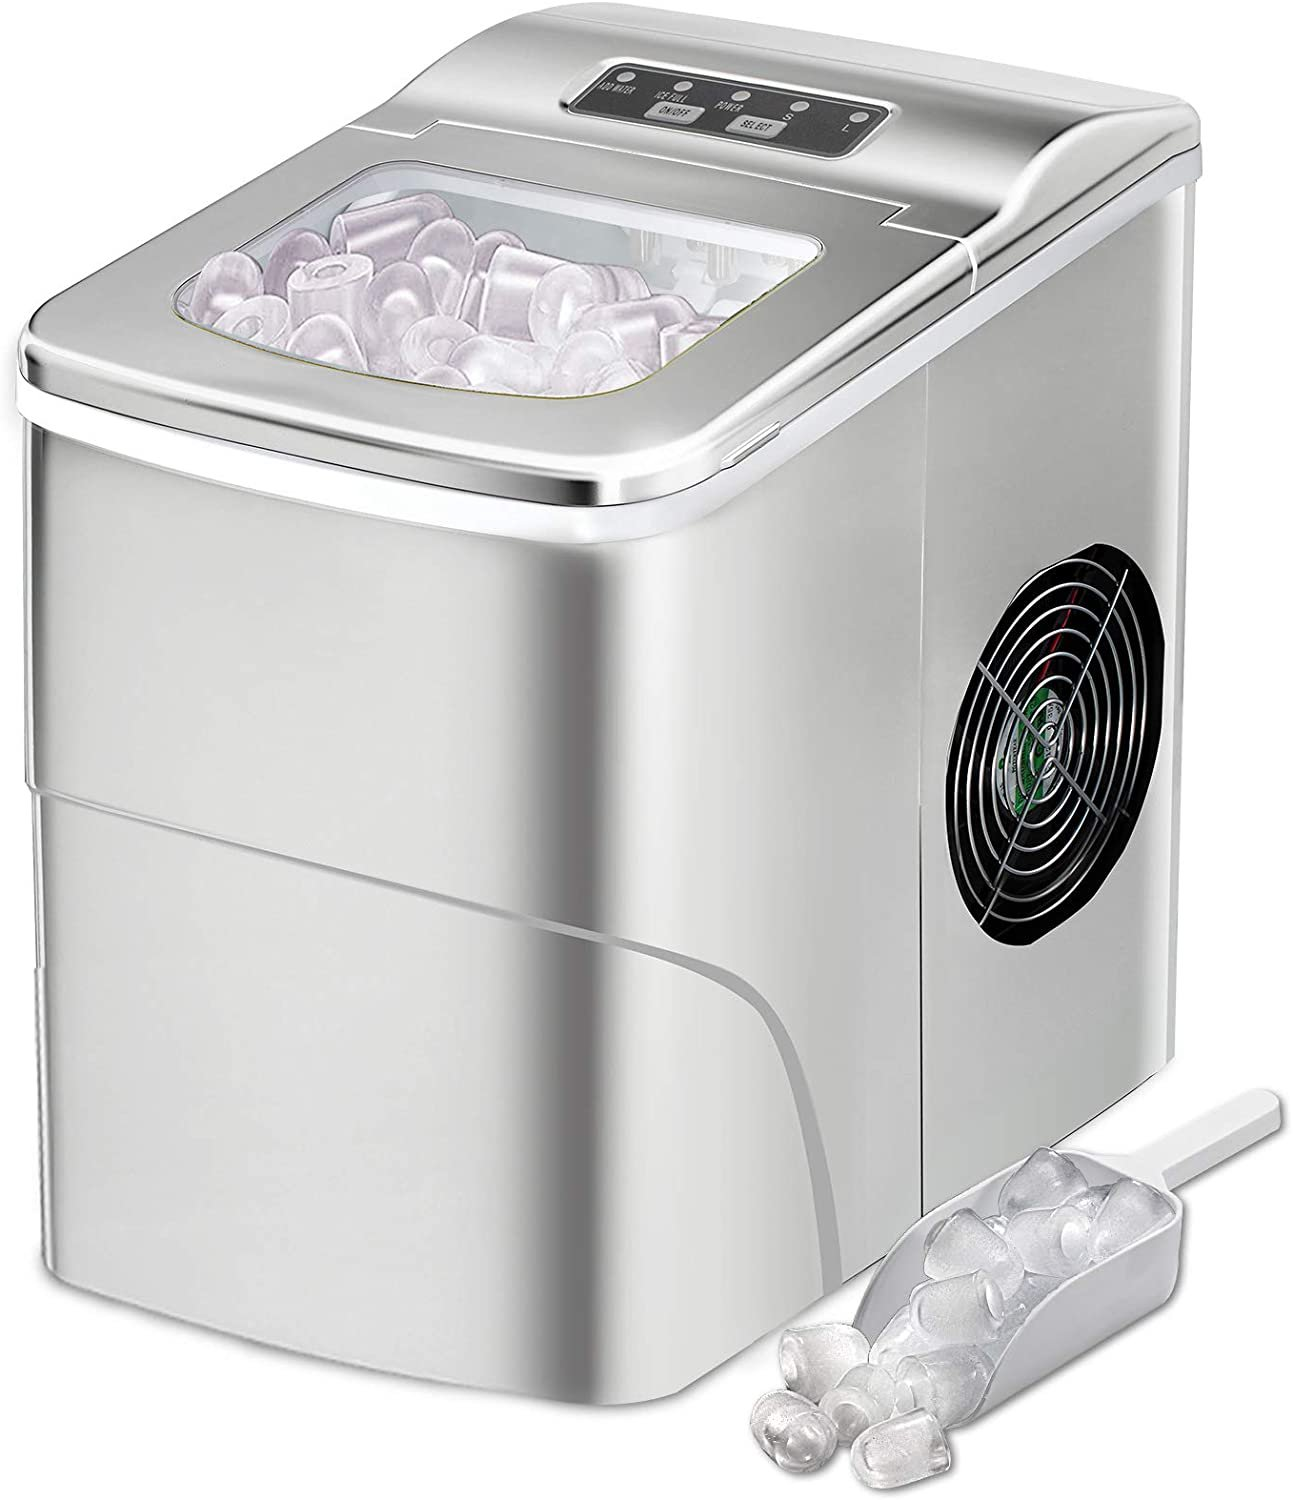 AGLUCKY Counter top Ice Maker Machine,Compact Automatic Ice Maker (Silver)